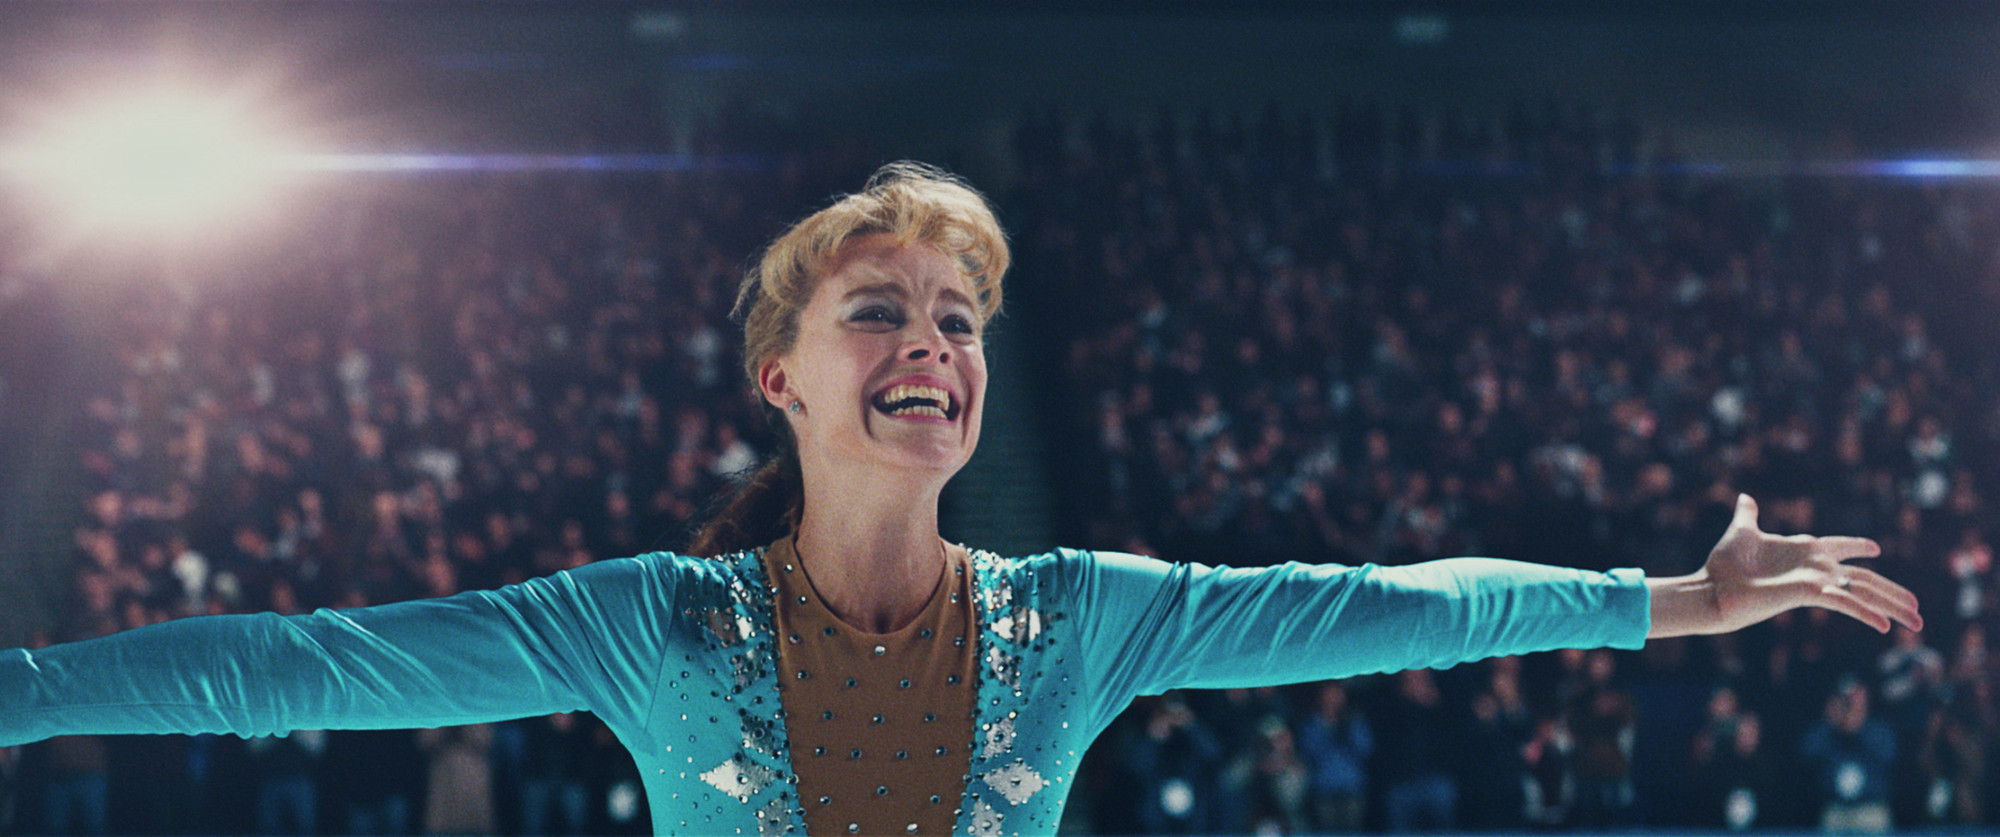 I, Tonya. 2017. USA. Directed by Craig Gillespie. Courtesy of Neon